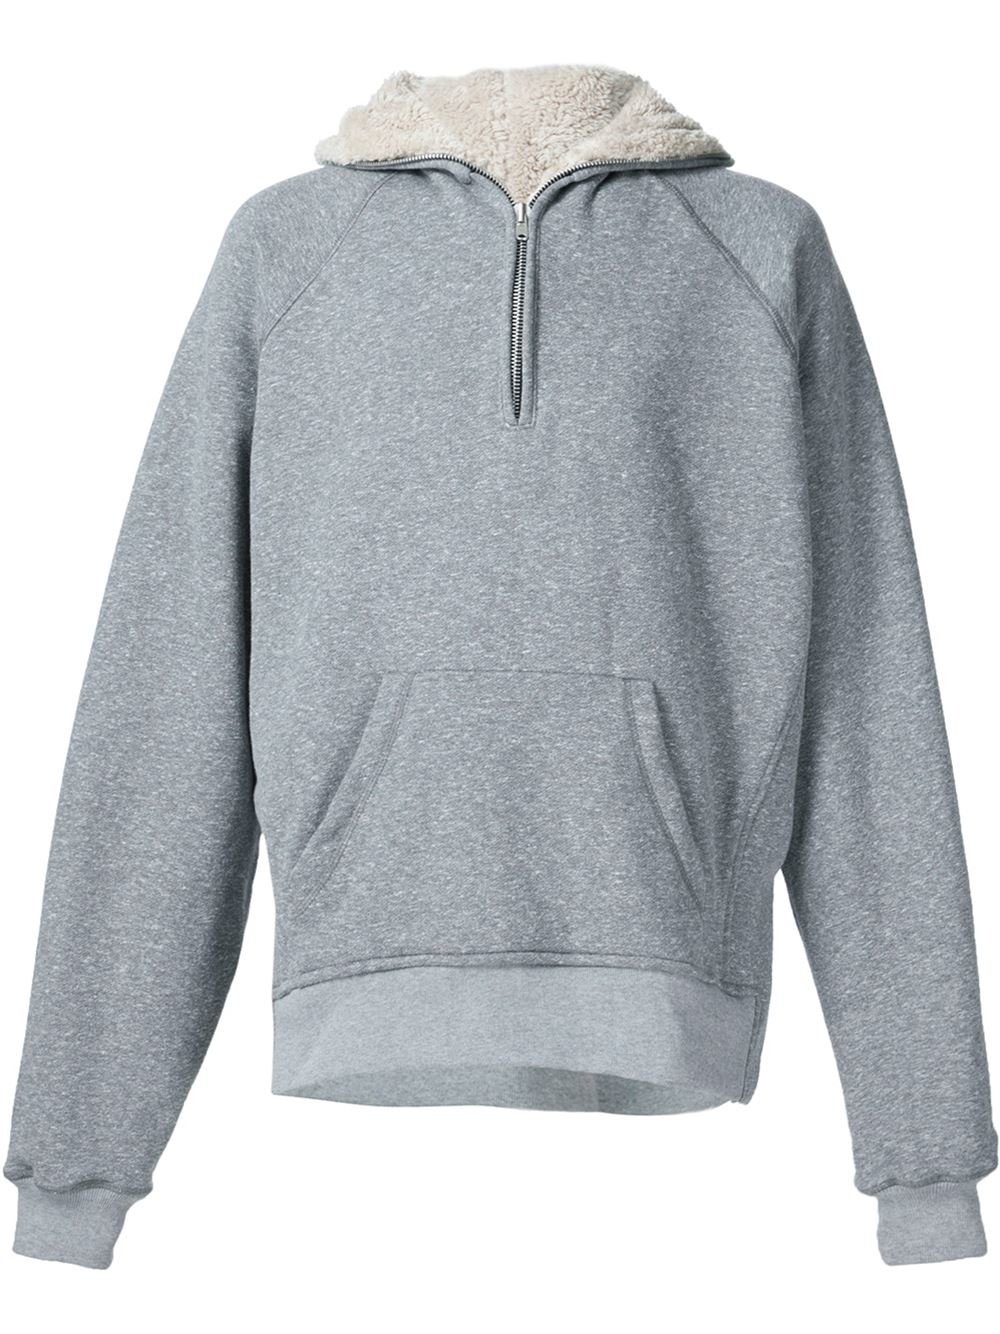 Fear Of God Half Zip Sherpa Hoodie In Gray For Men Lyst